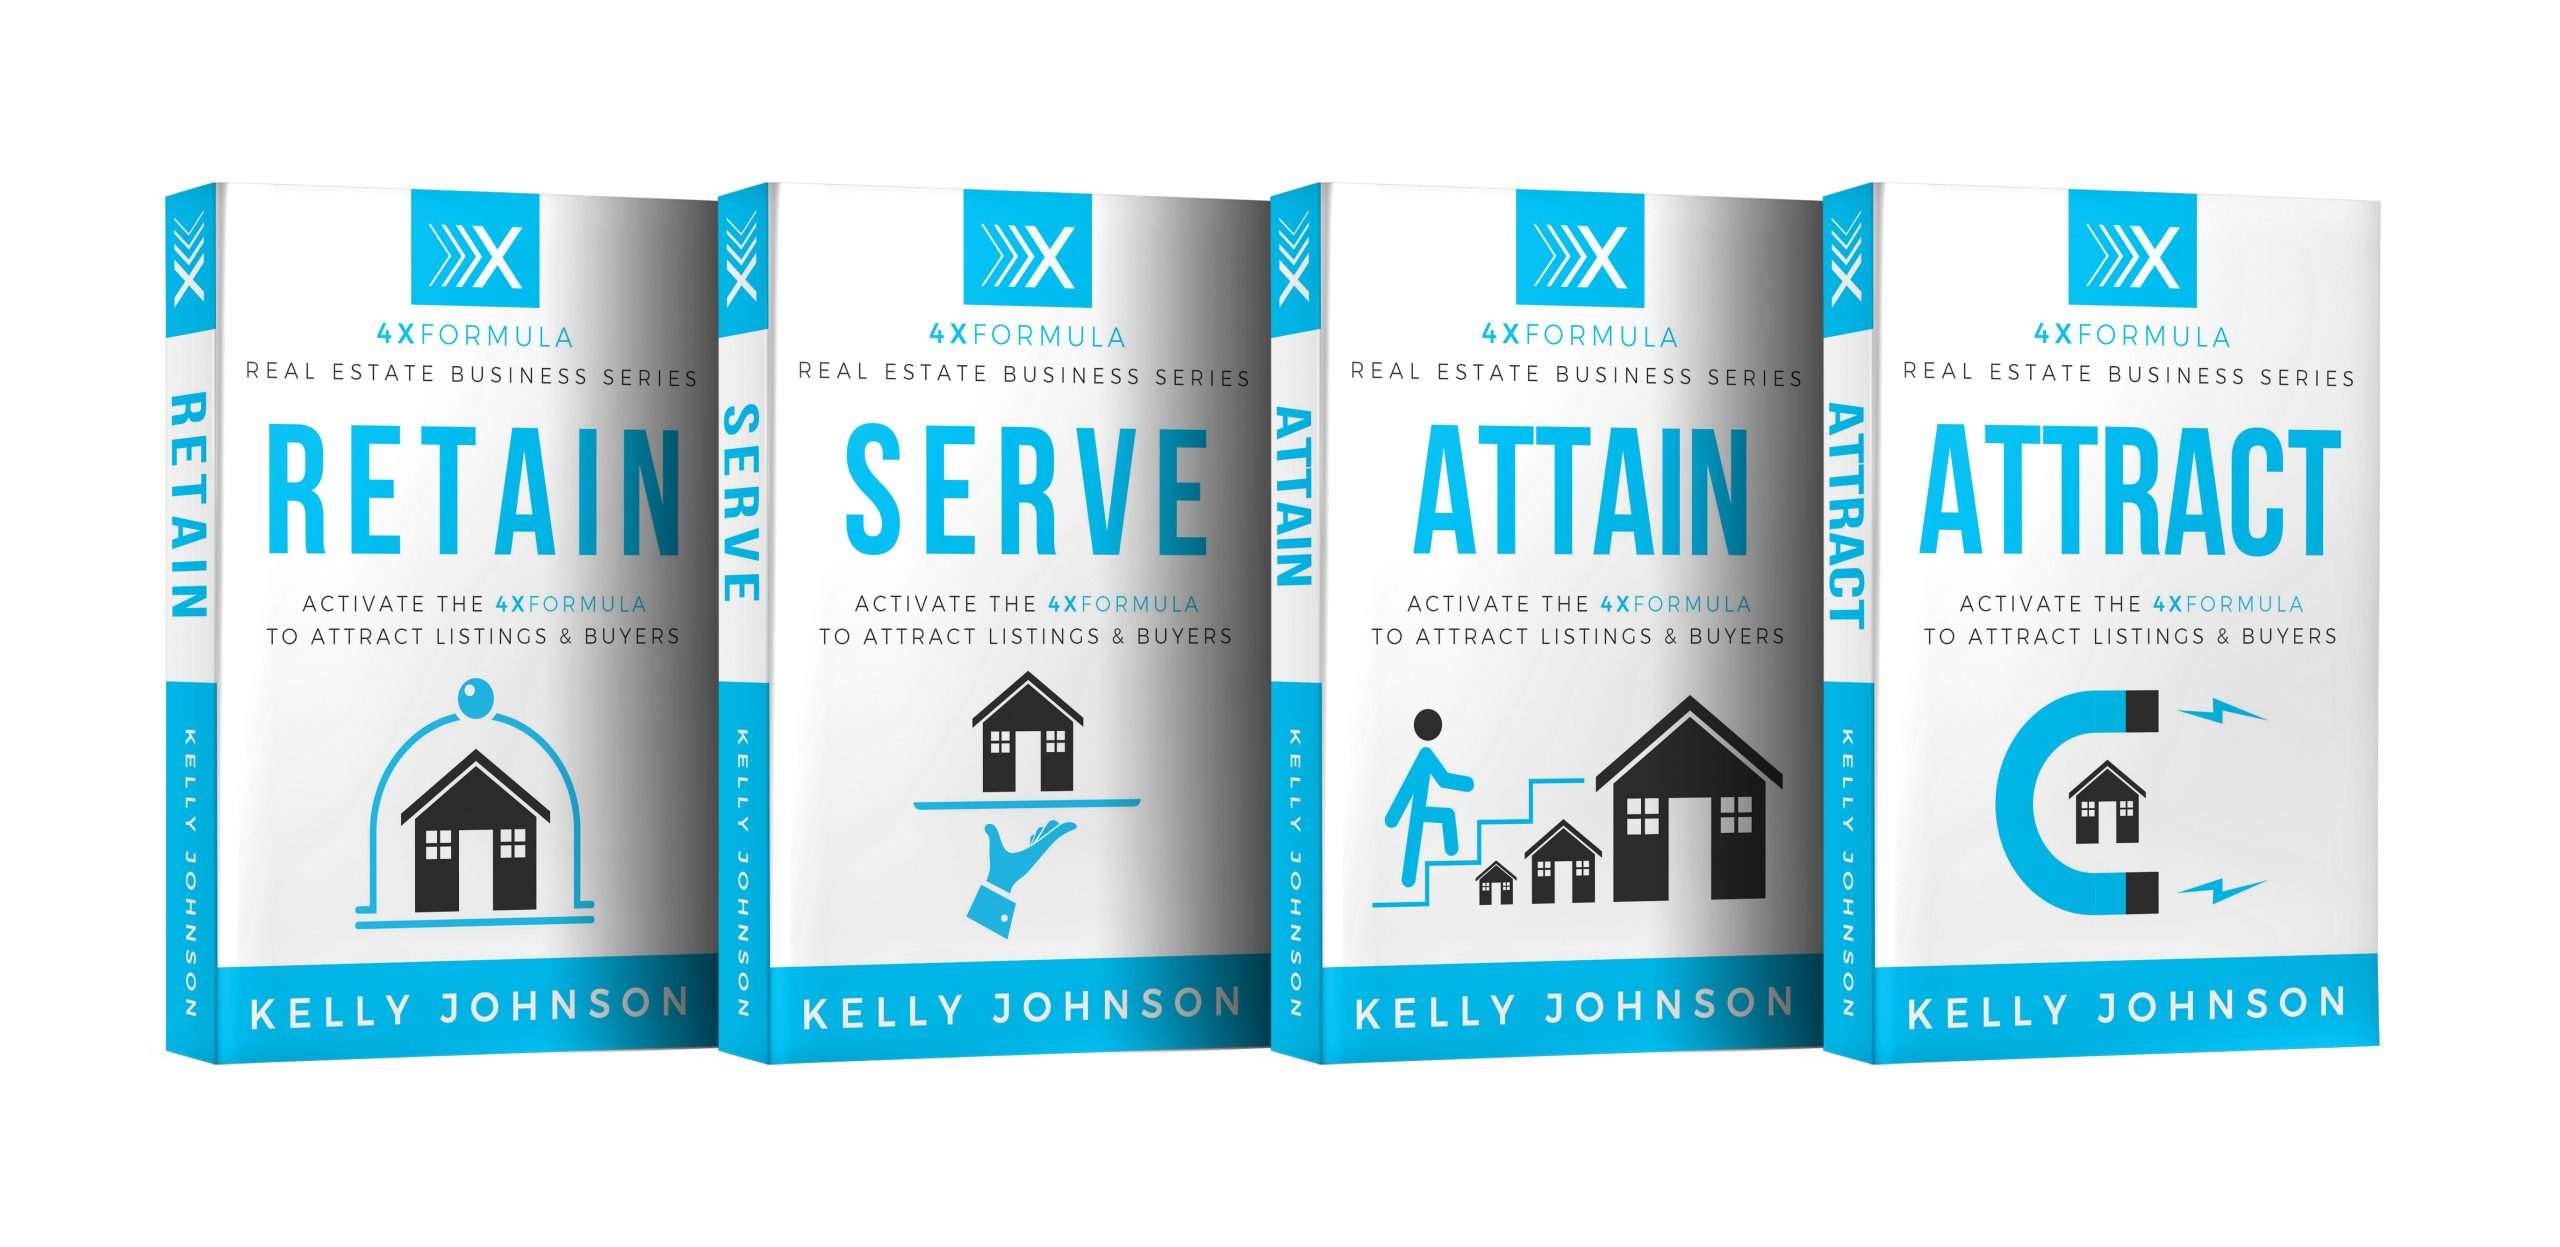 4 books written by Kelly Johnson about helping you retain, serve, attain & attract new clients - 4x Formula